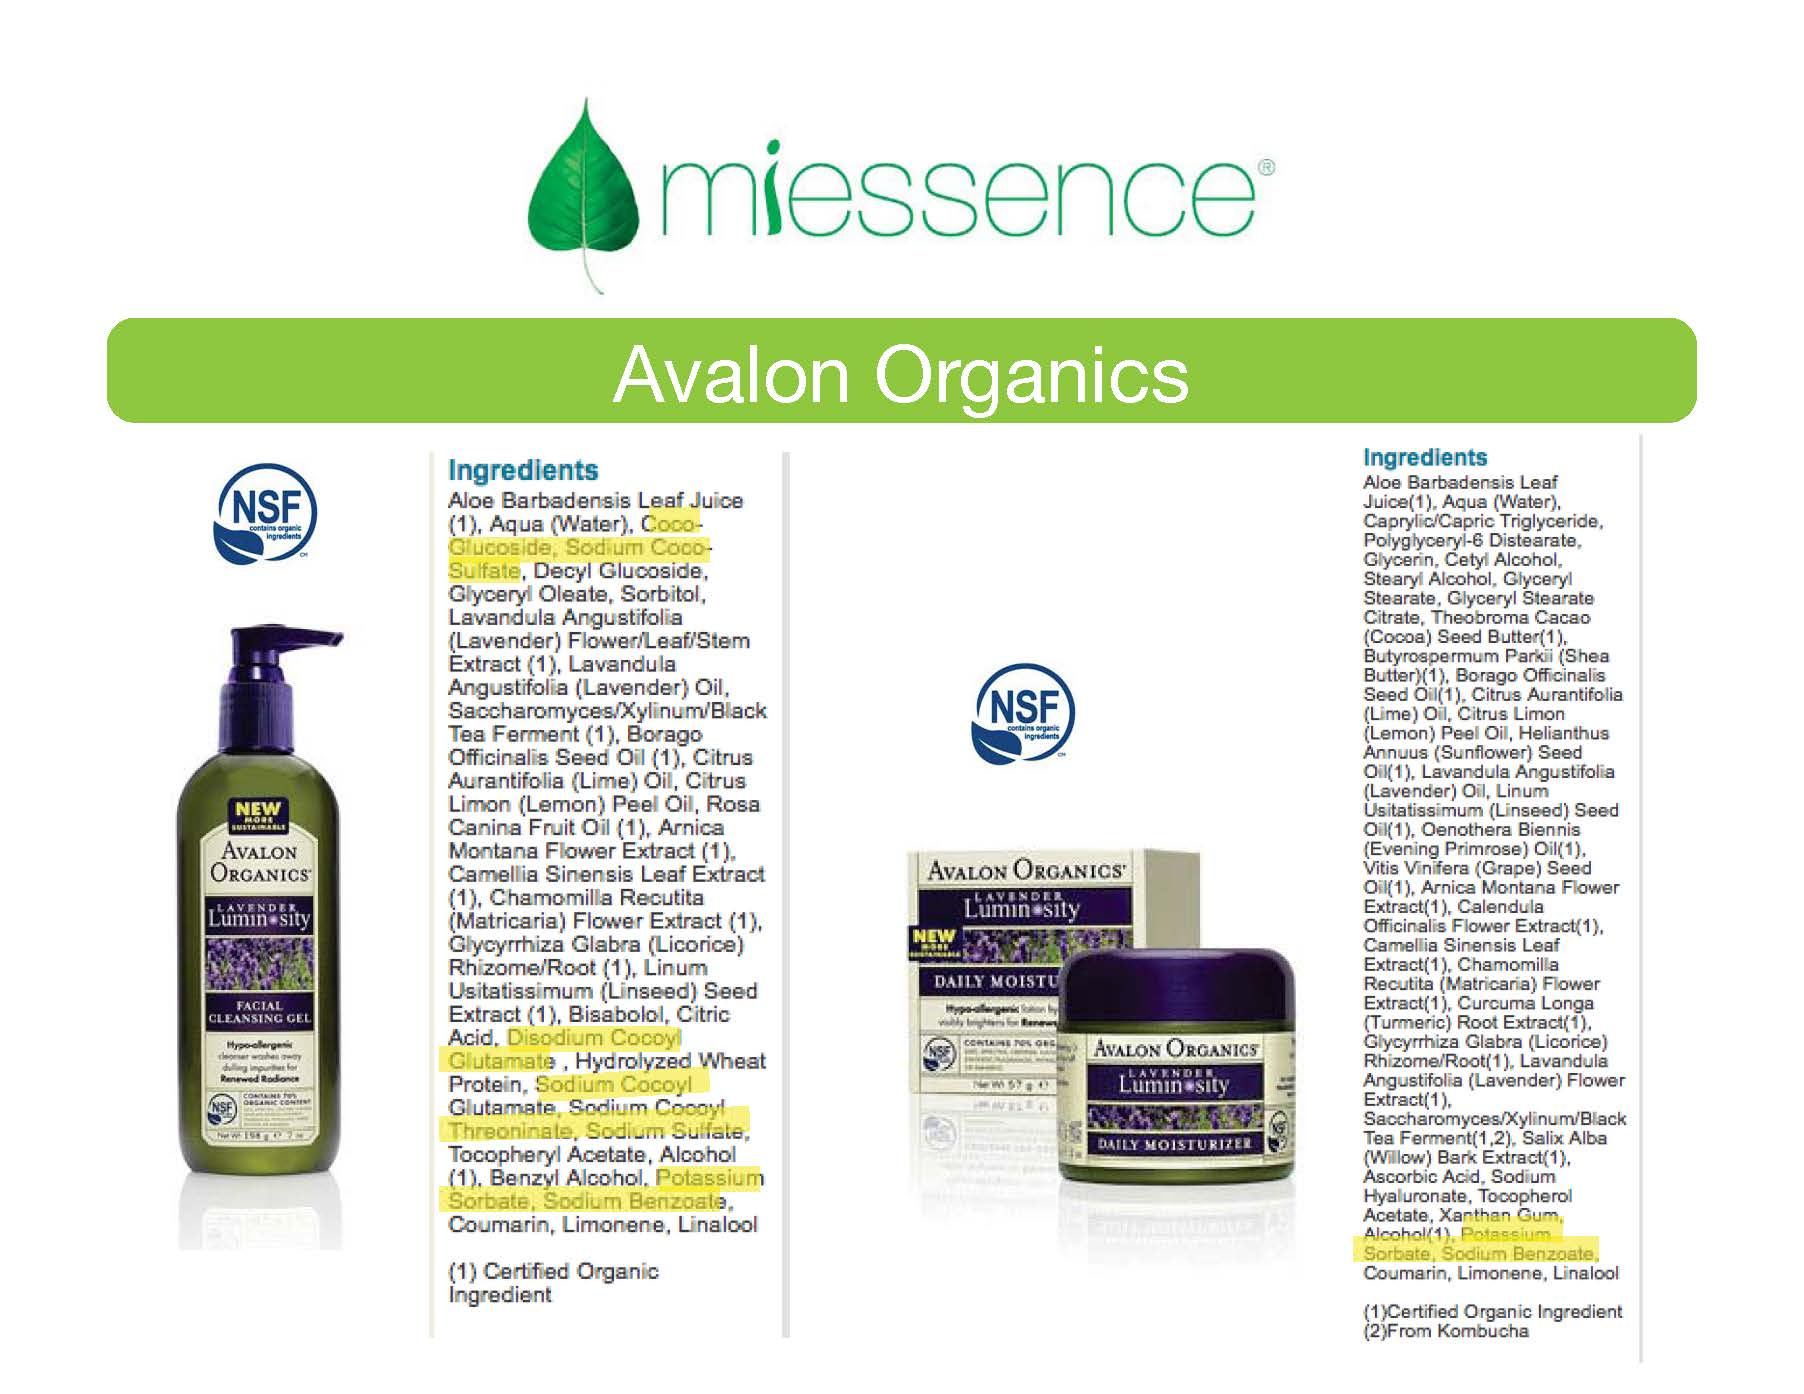 Is avalon organics really organic